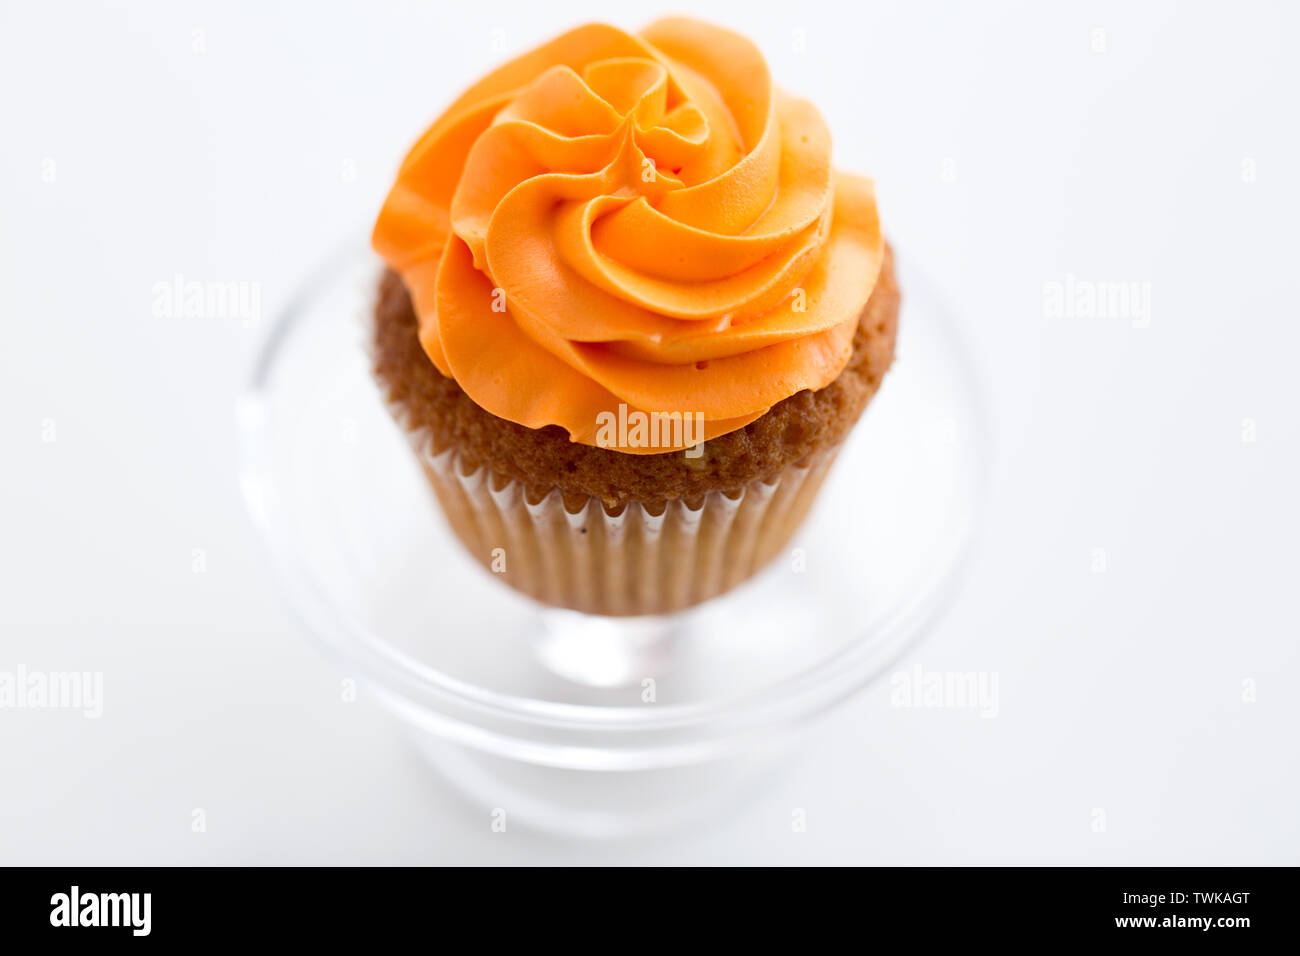 cupcake with frosting on confectionery stand - Stock Image